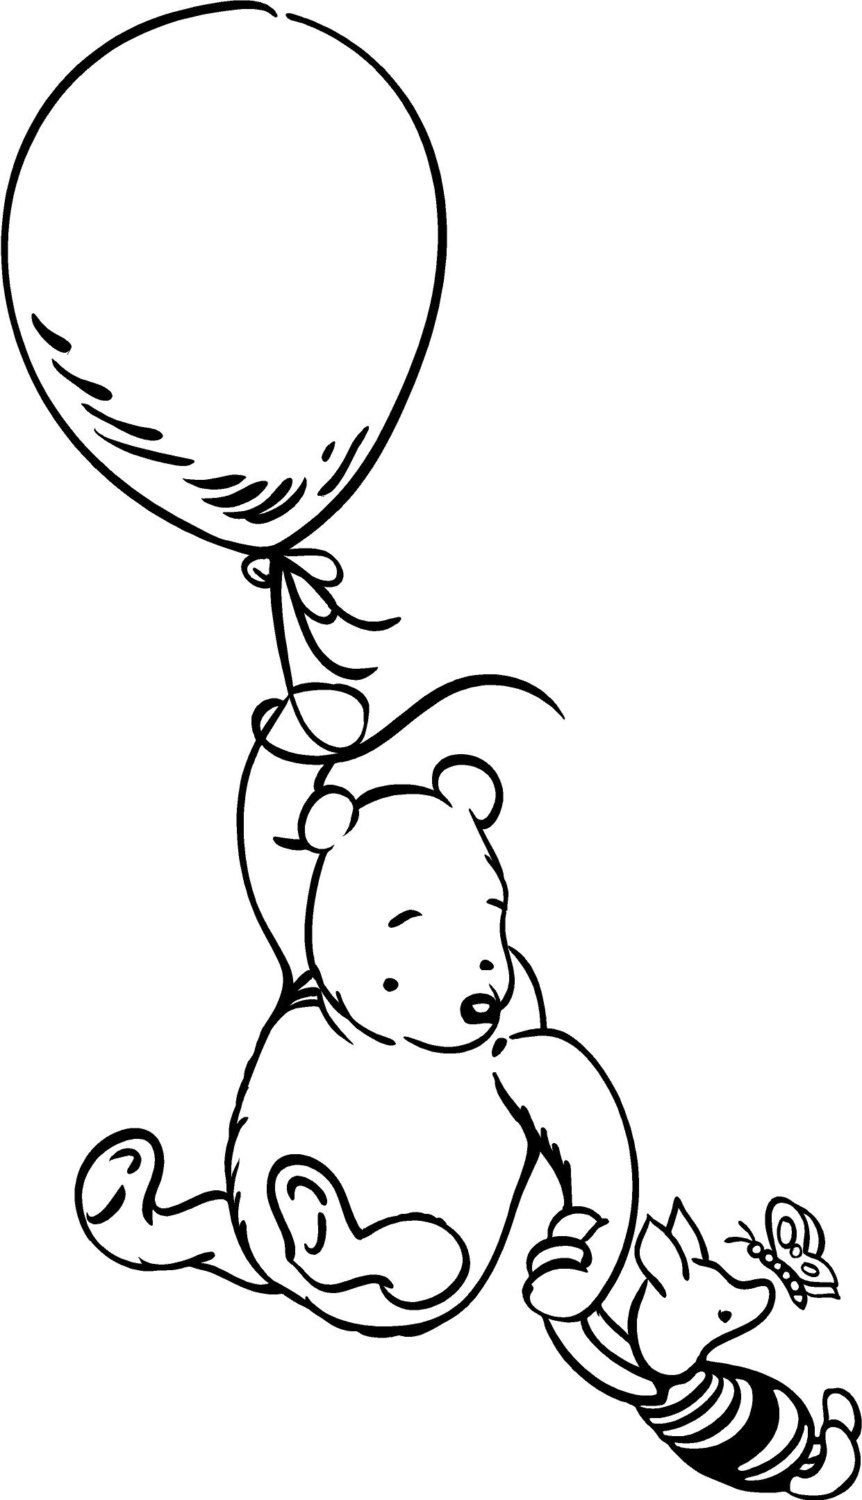 Classic Winnie The Pooh Vinyl Wall Decal By Grabersgraphics 28 00 Winnie The Pooh Tattoos Winnie The Pooh Drawing Pooh Tattoo